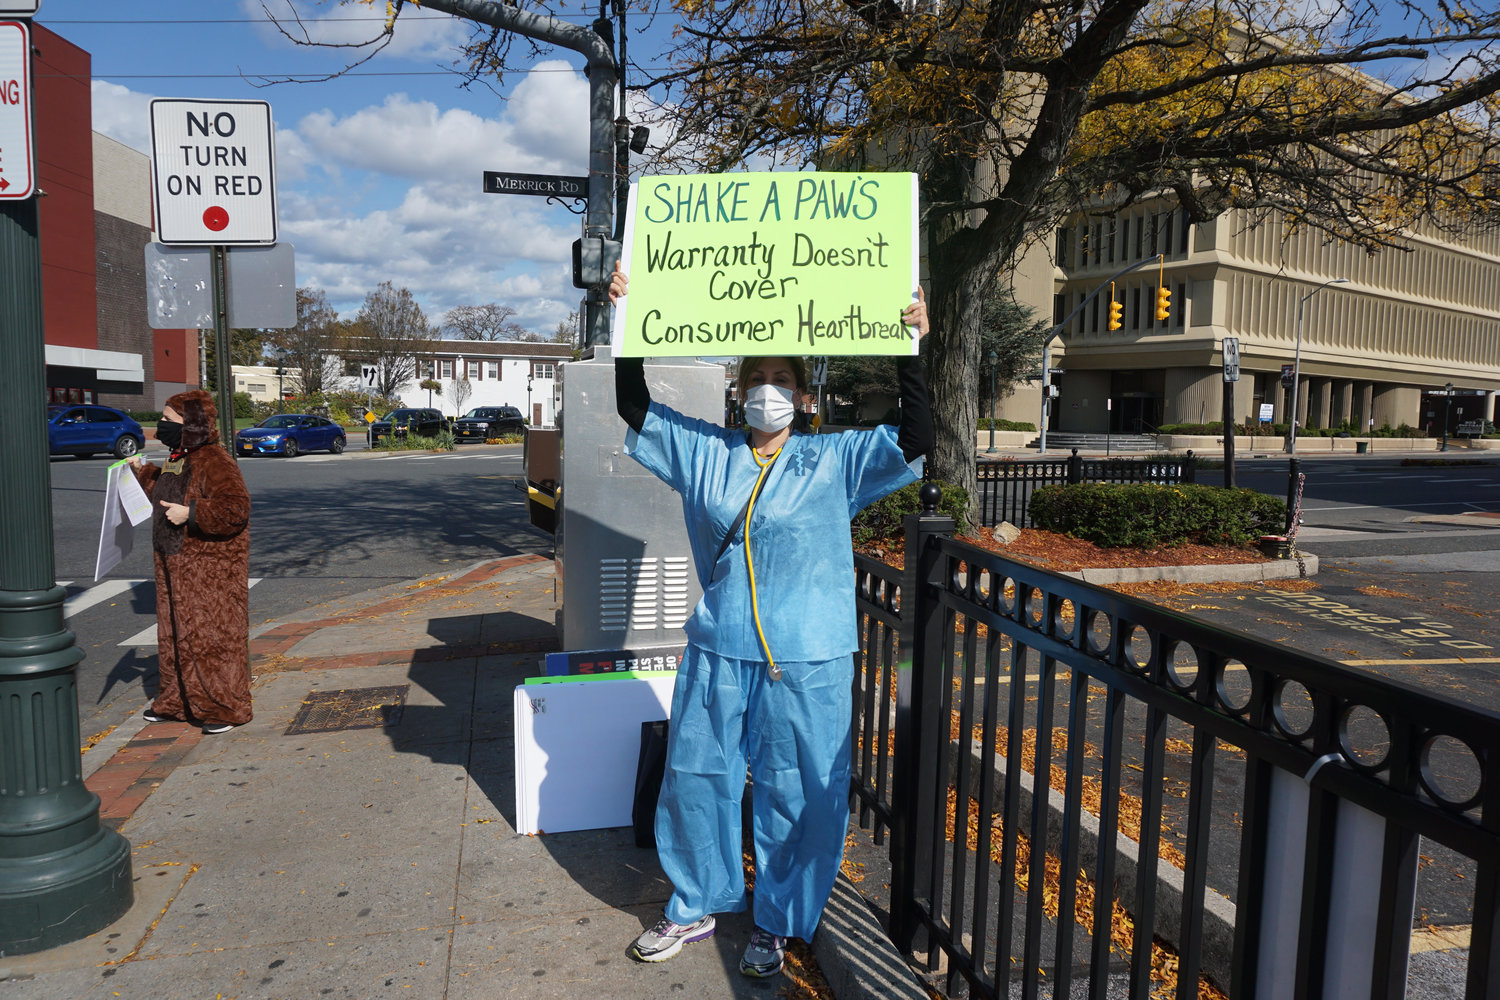 Keri Michel, who is a volunteer from Puppy Mill Long Island, helped organize the protest.